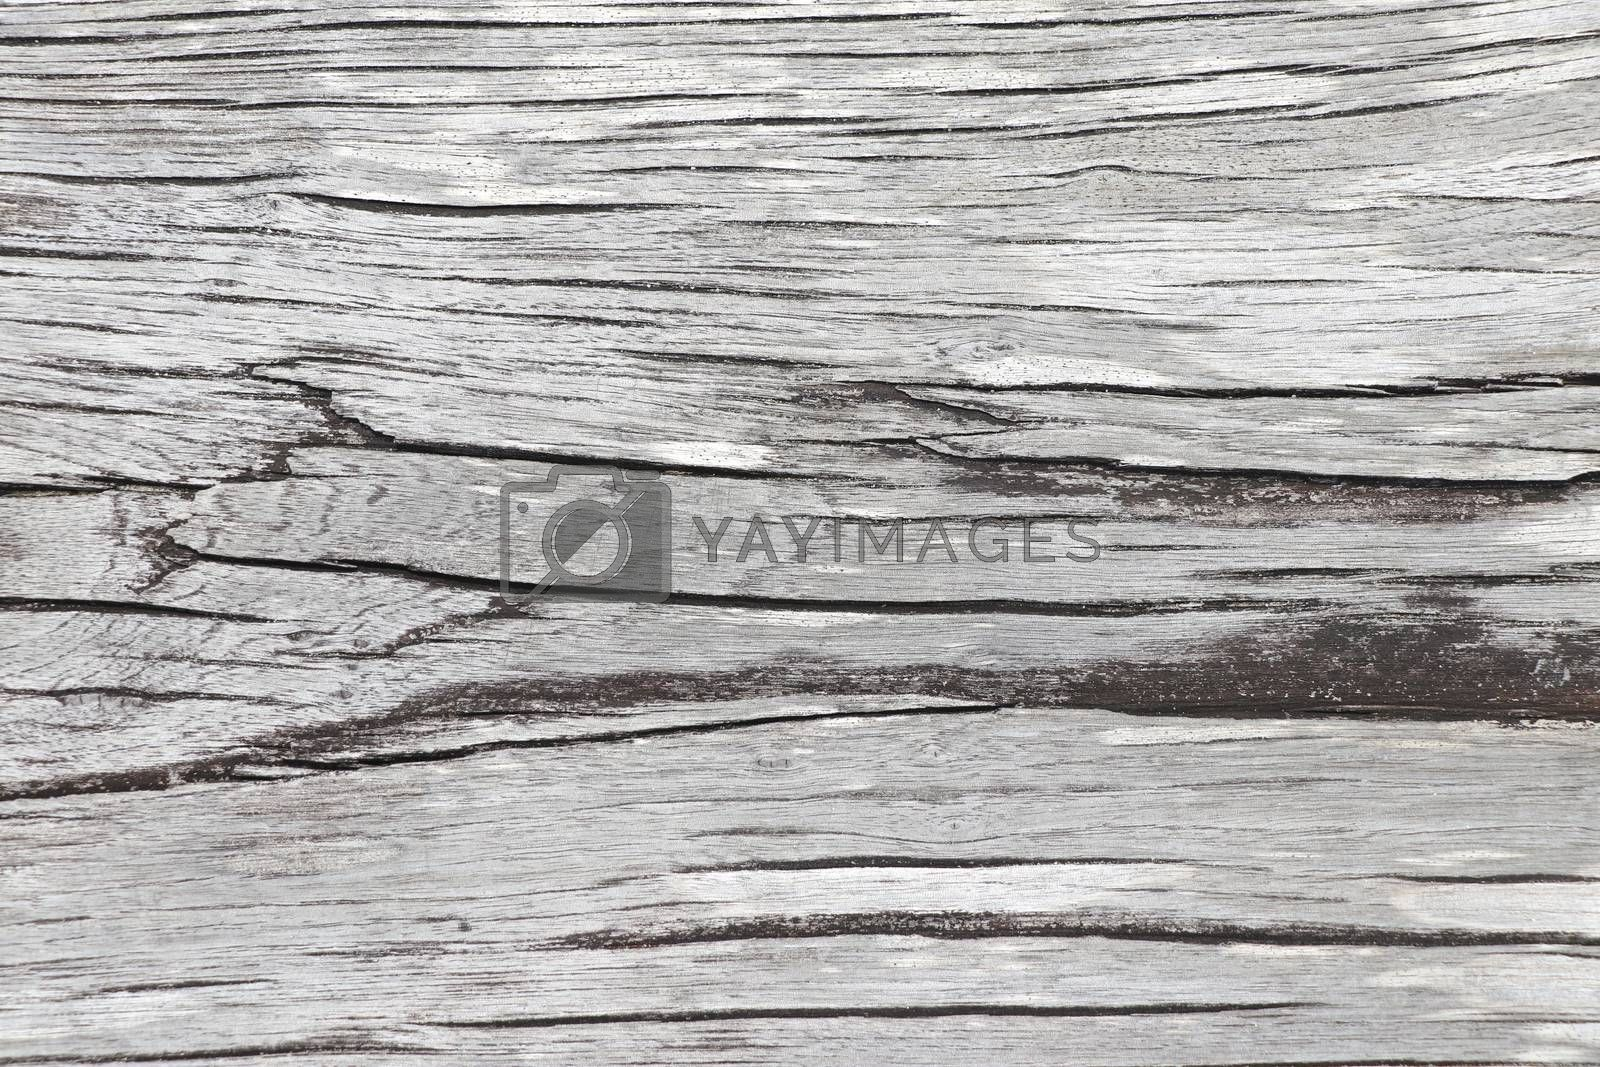 Old wood background. Old wood surface background.